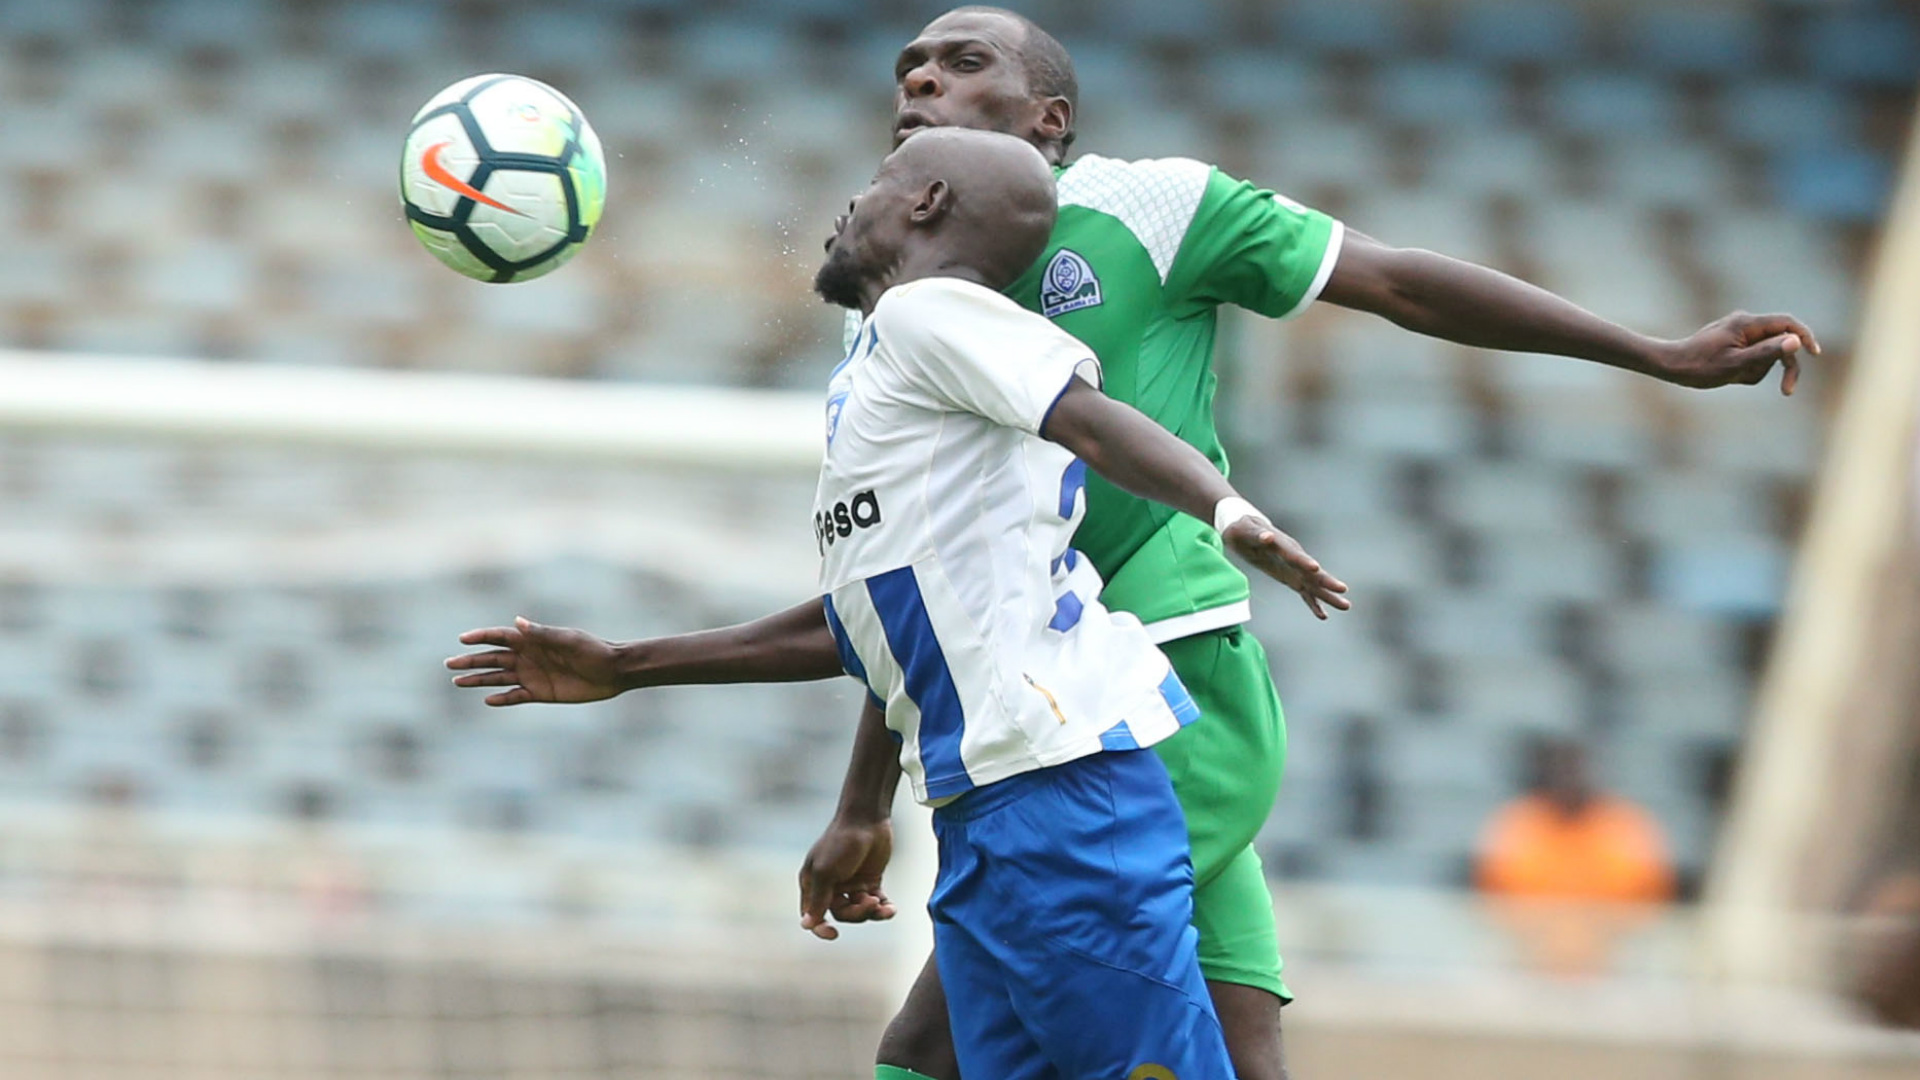 Joash Onyango of Gor Mahia v AFC Leopards.